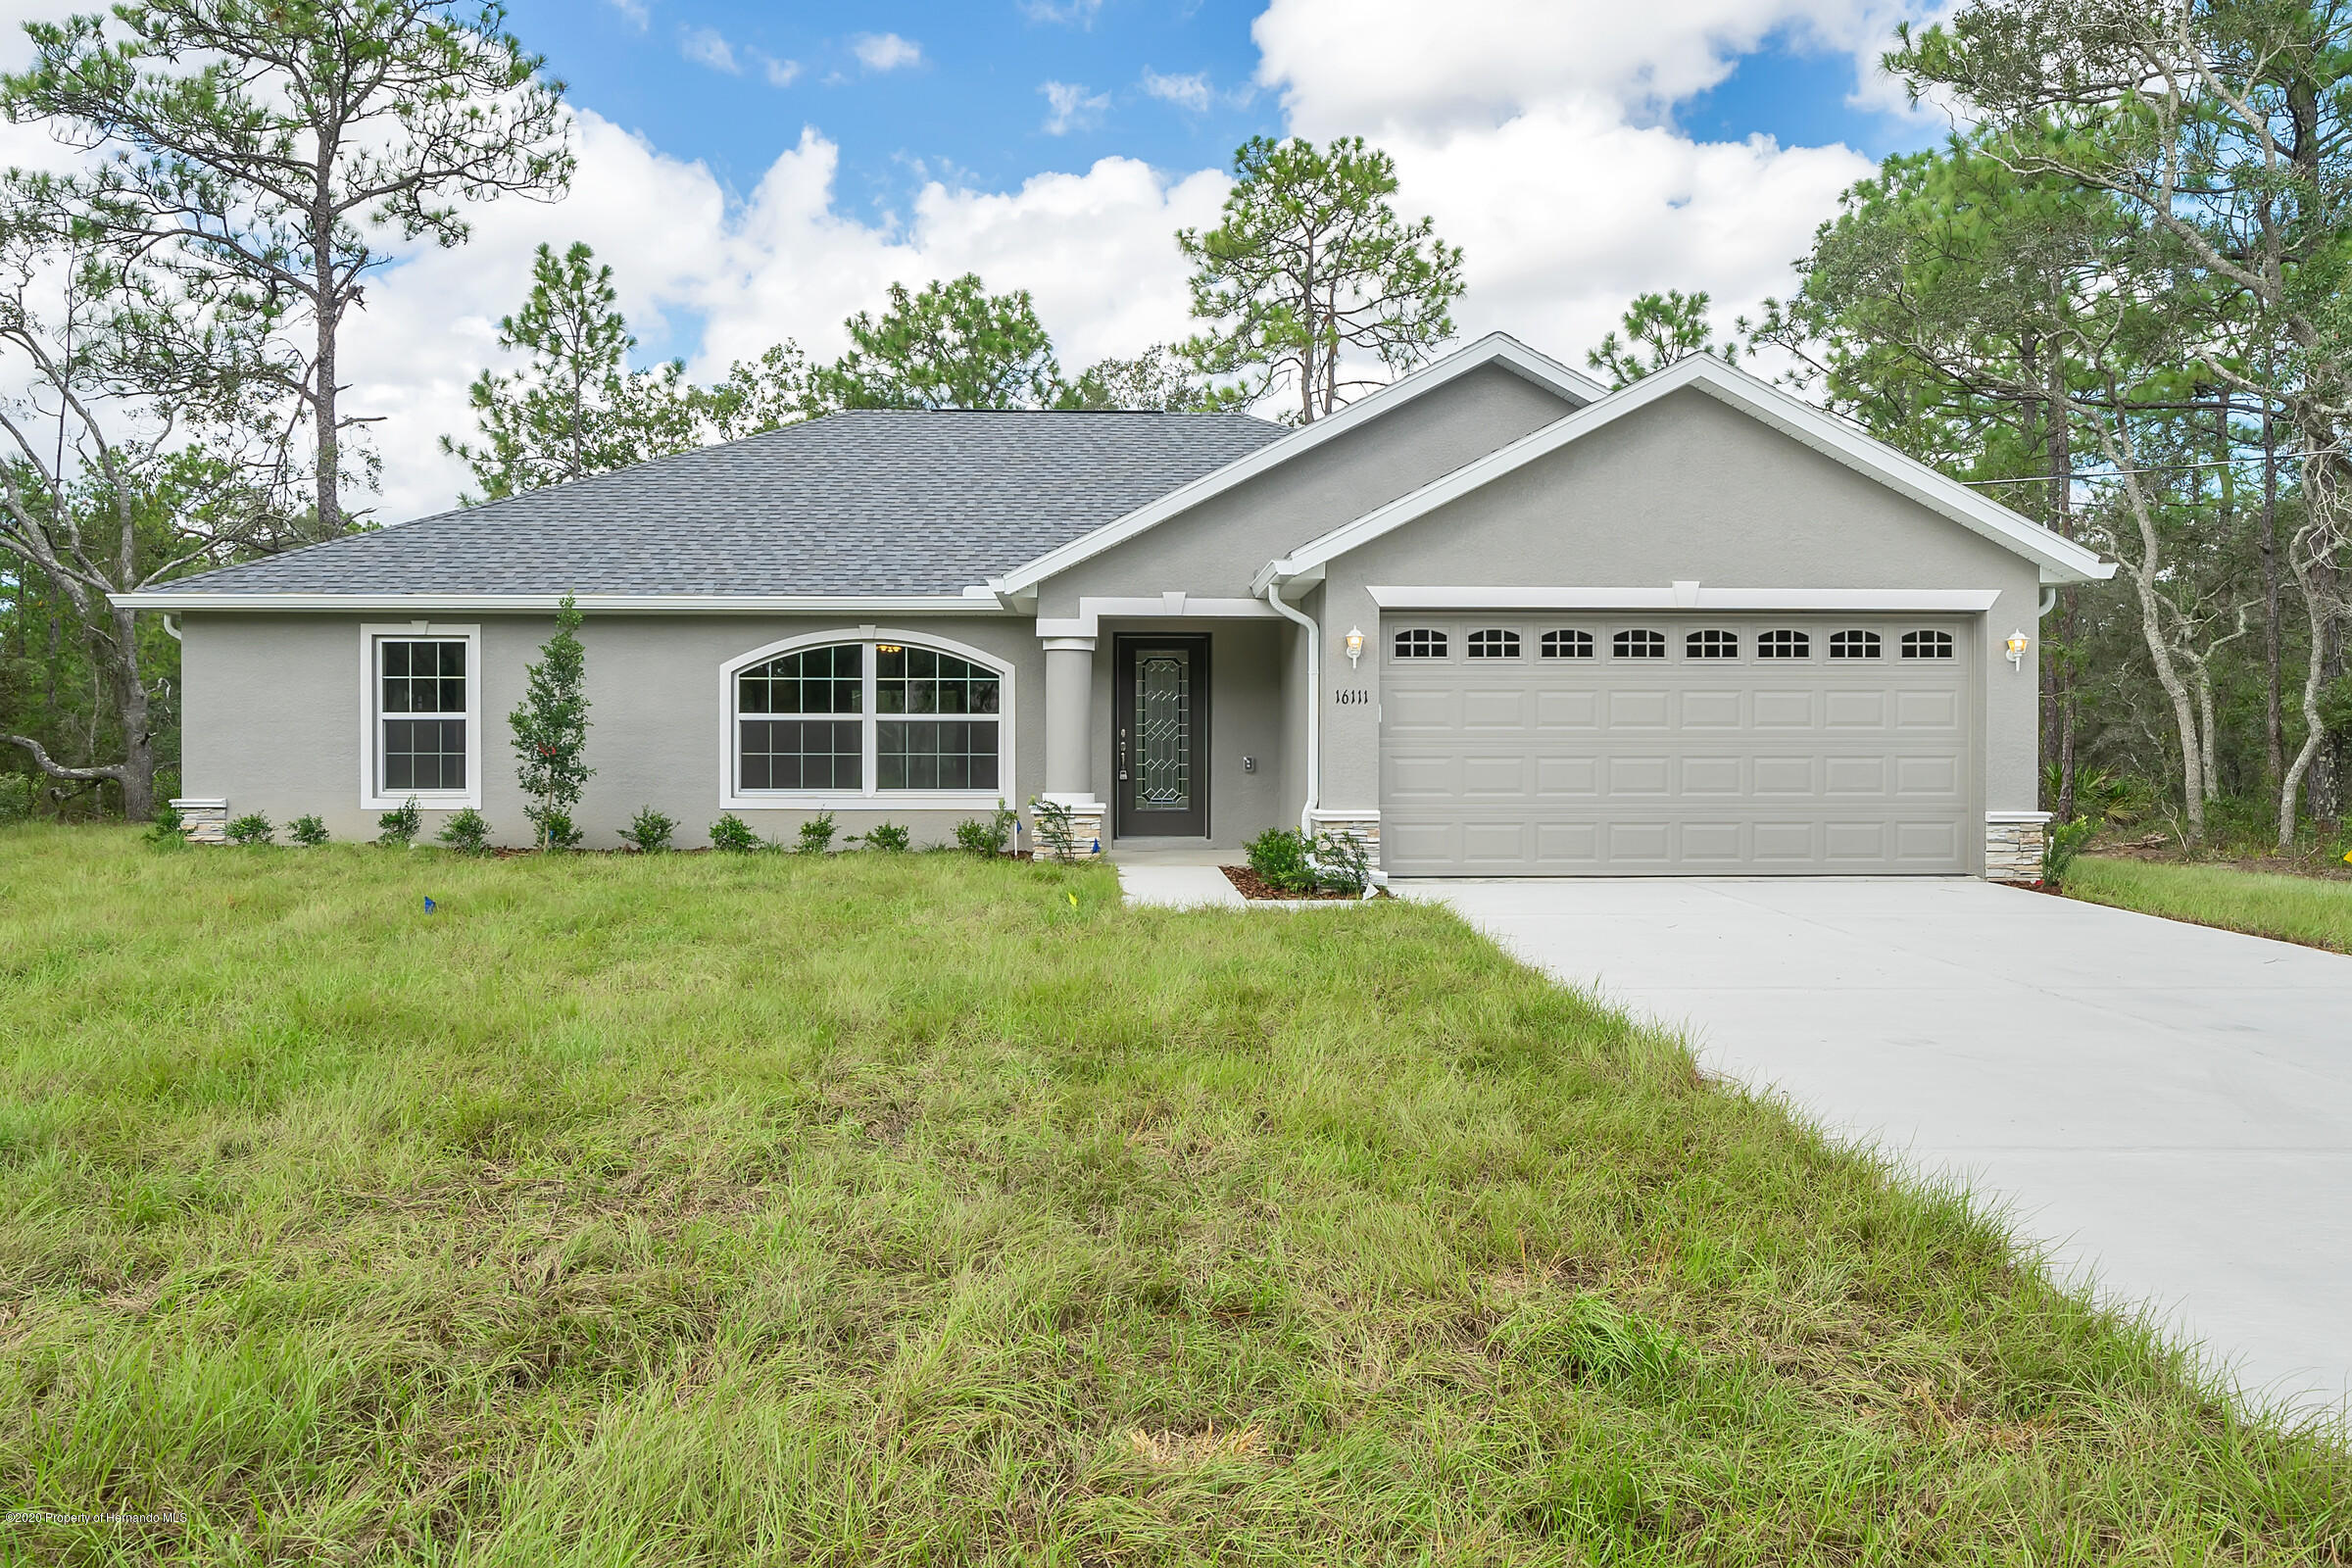 Details for 00 Hawks Nest Trail, Weeki Wachee, FL 34614